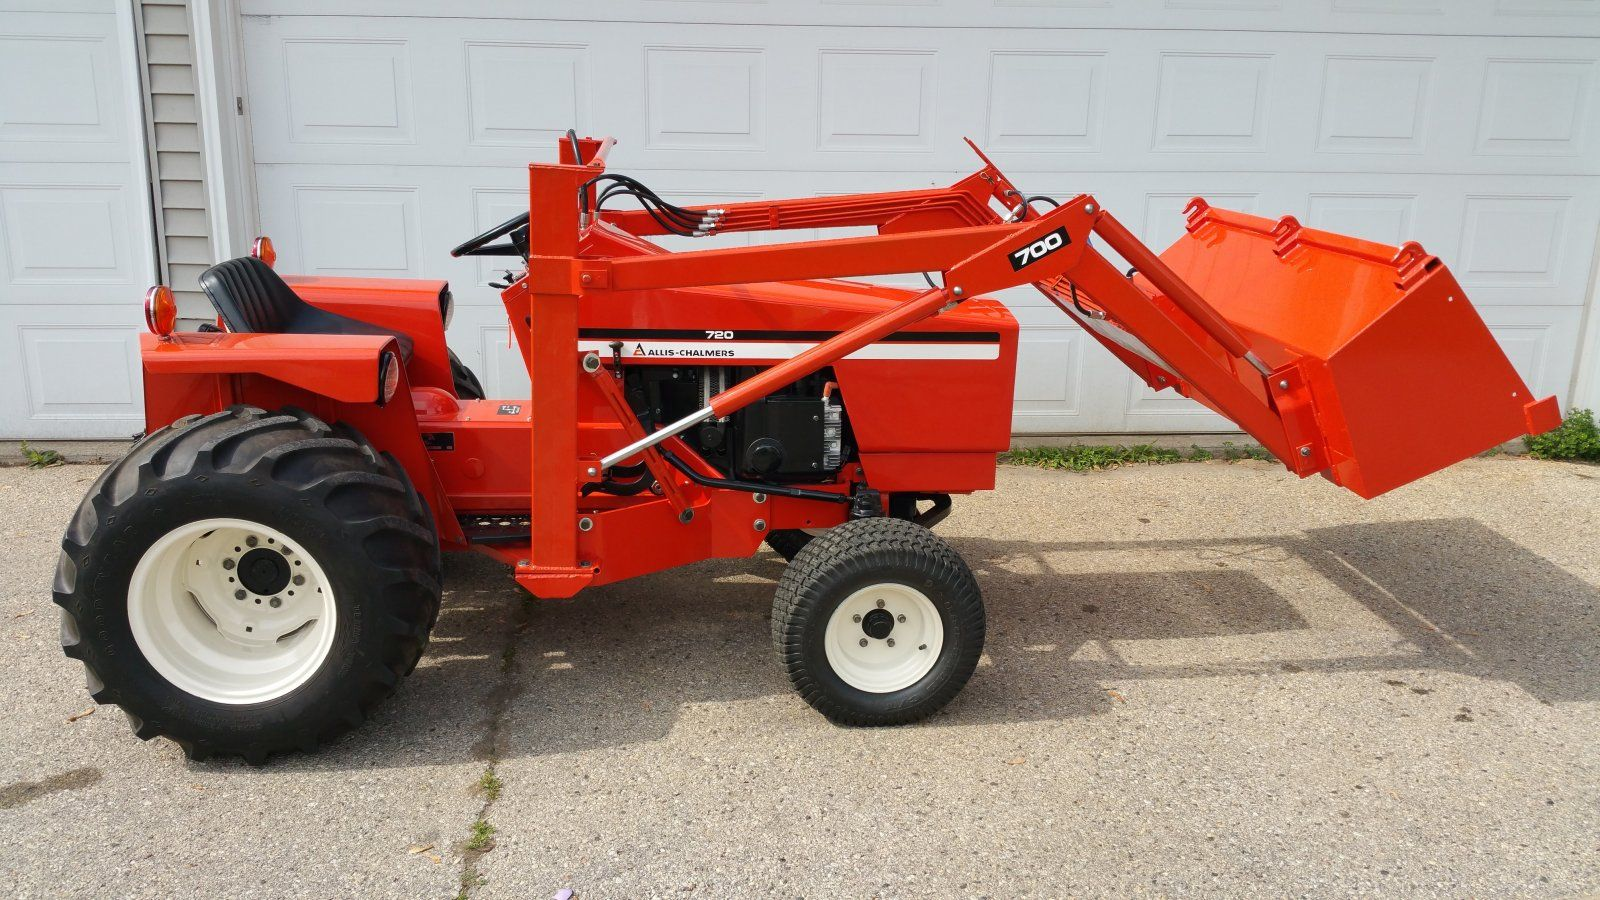 Allis Chalmers 720 Garden Tractor And Loader